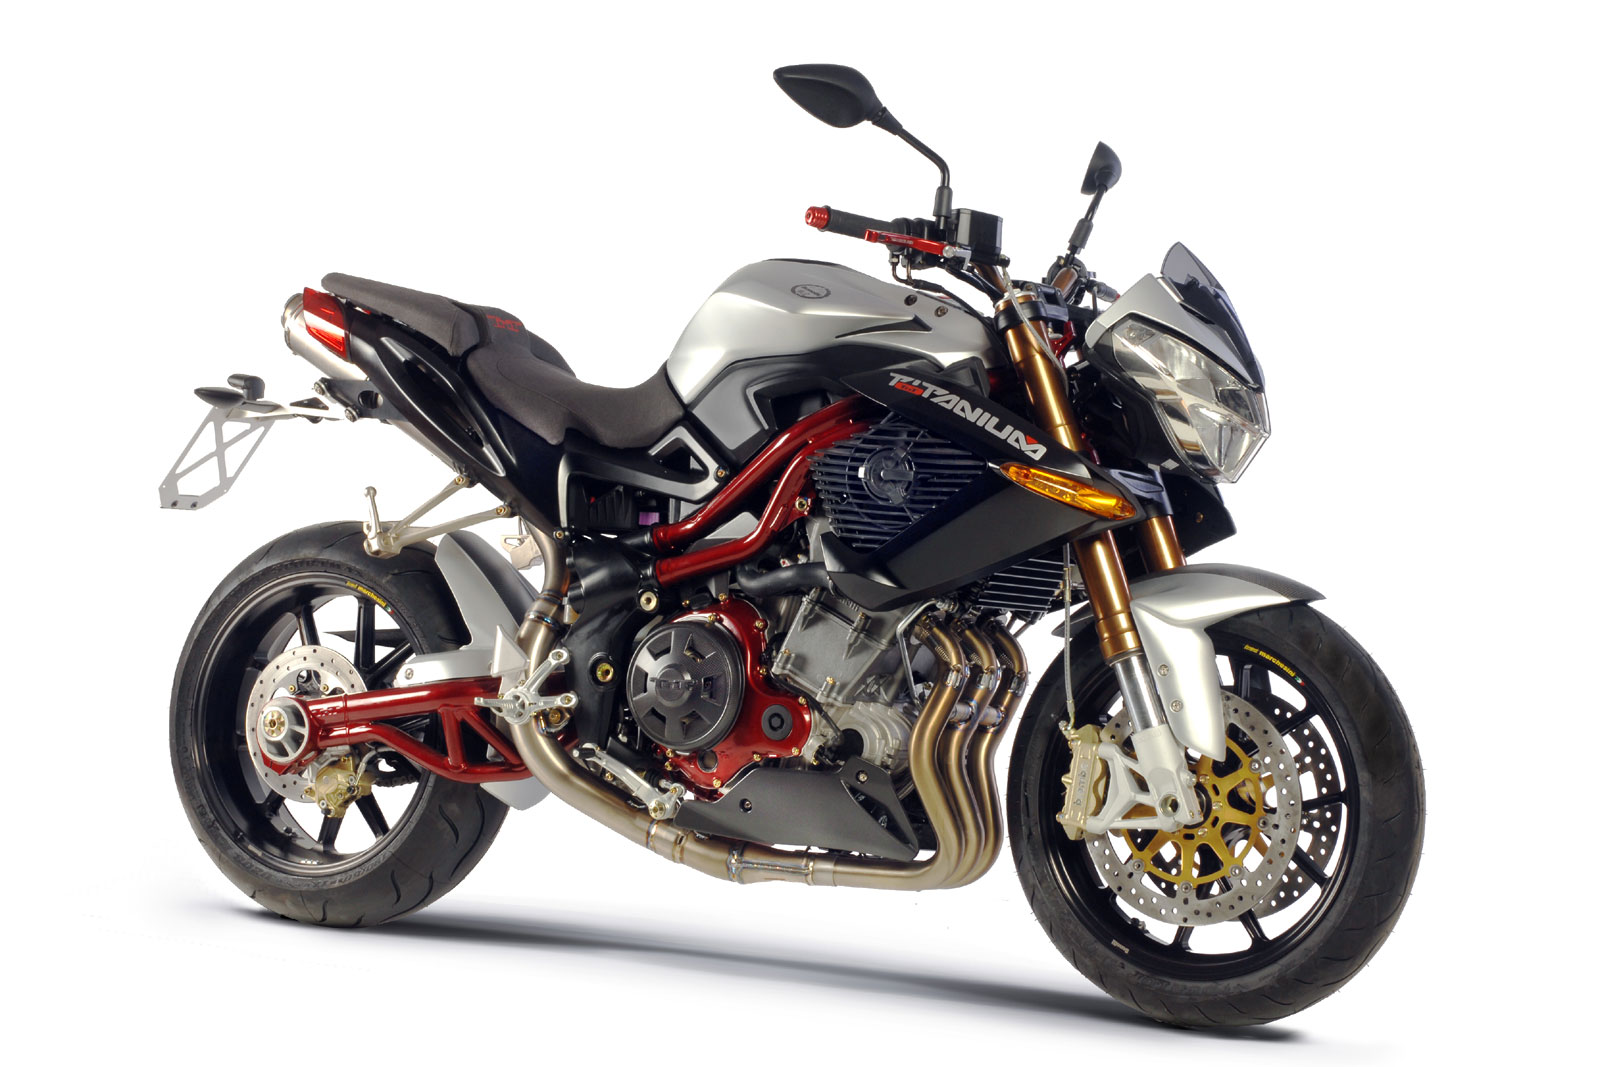 2008 benelli motorcycle models